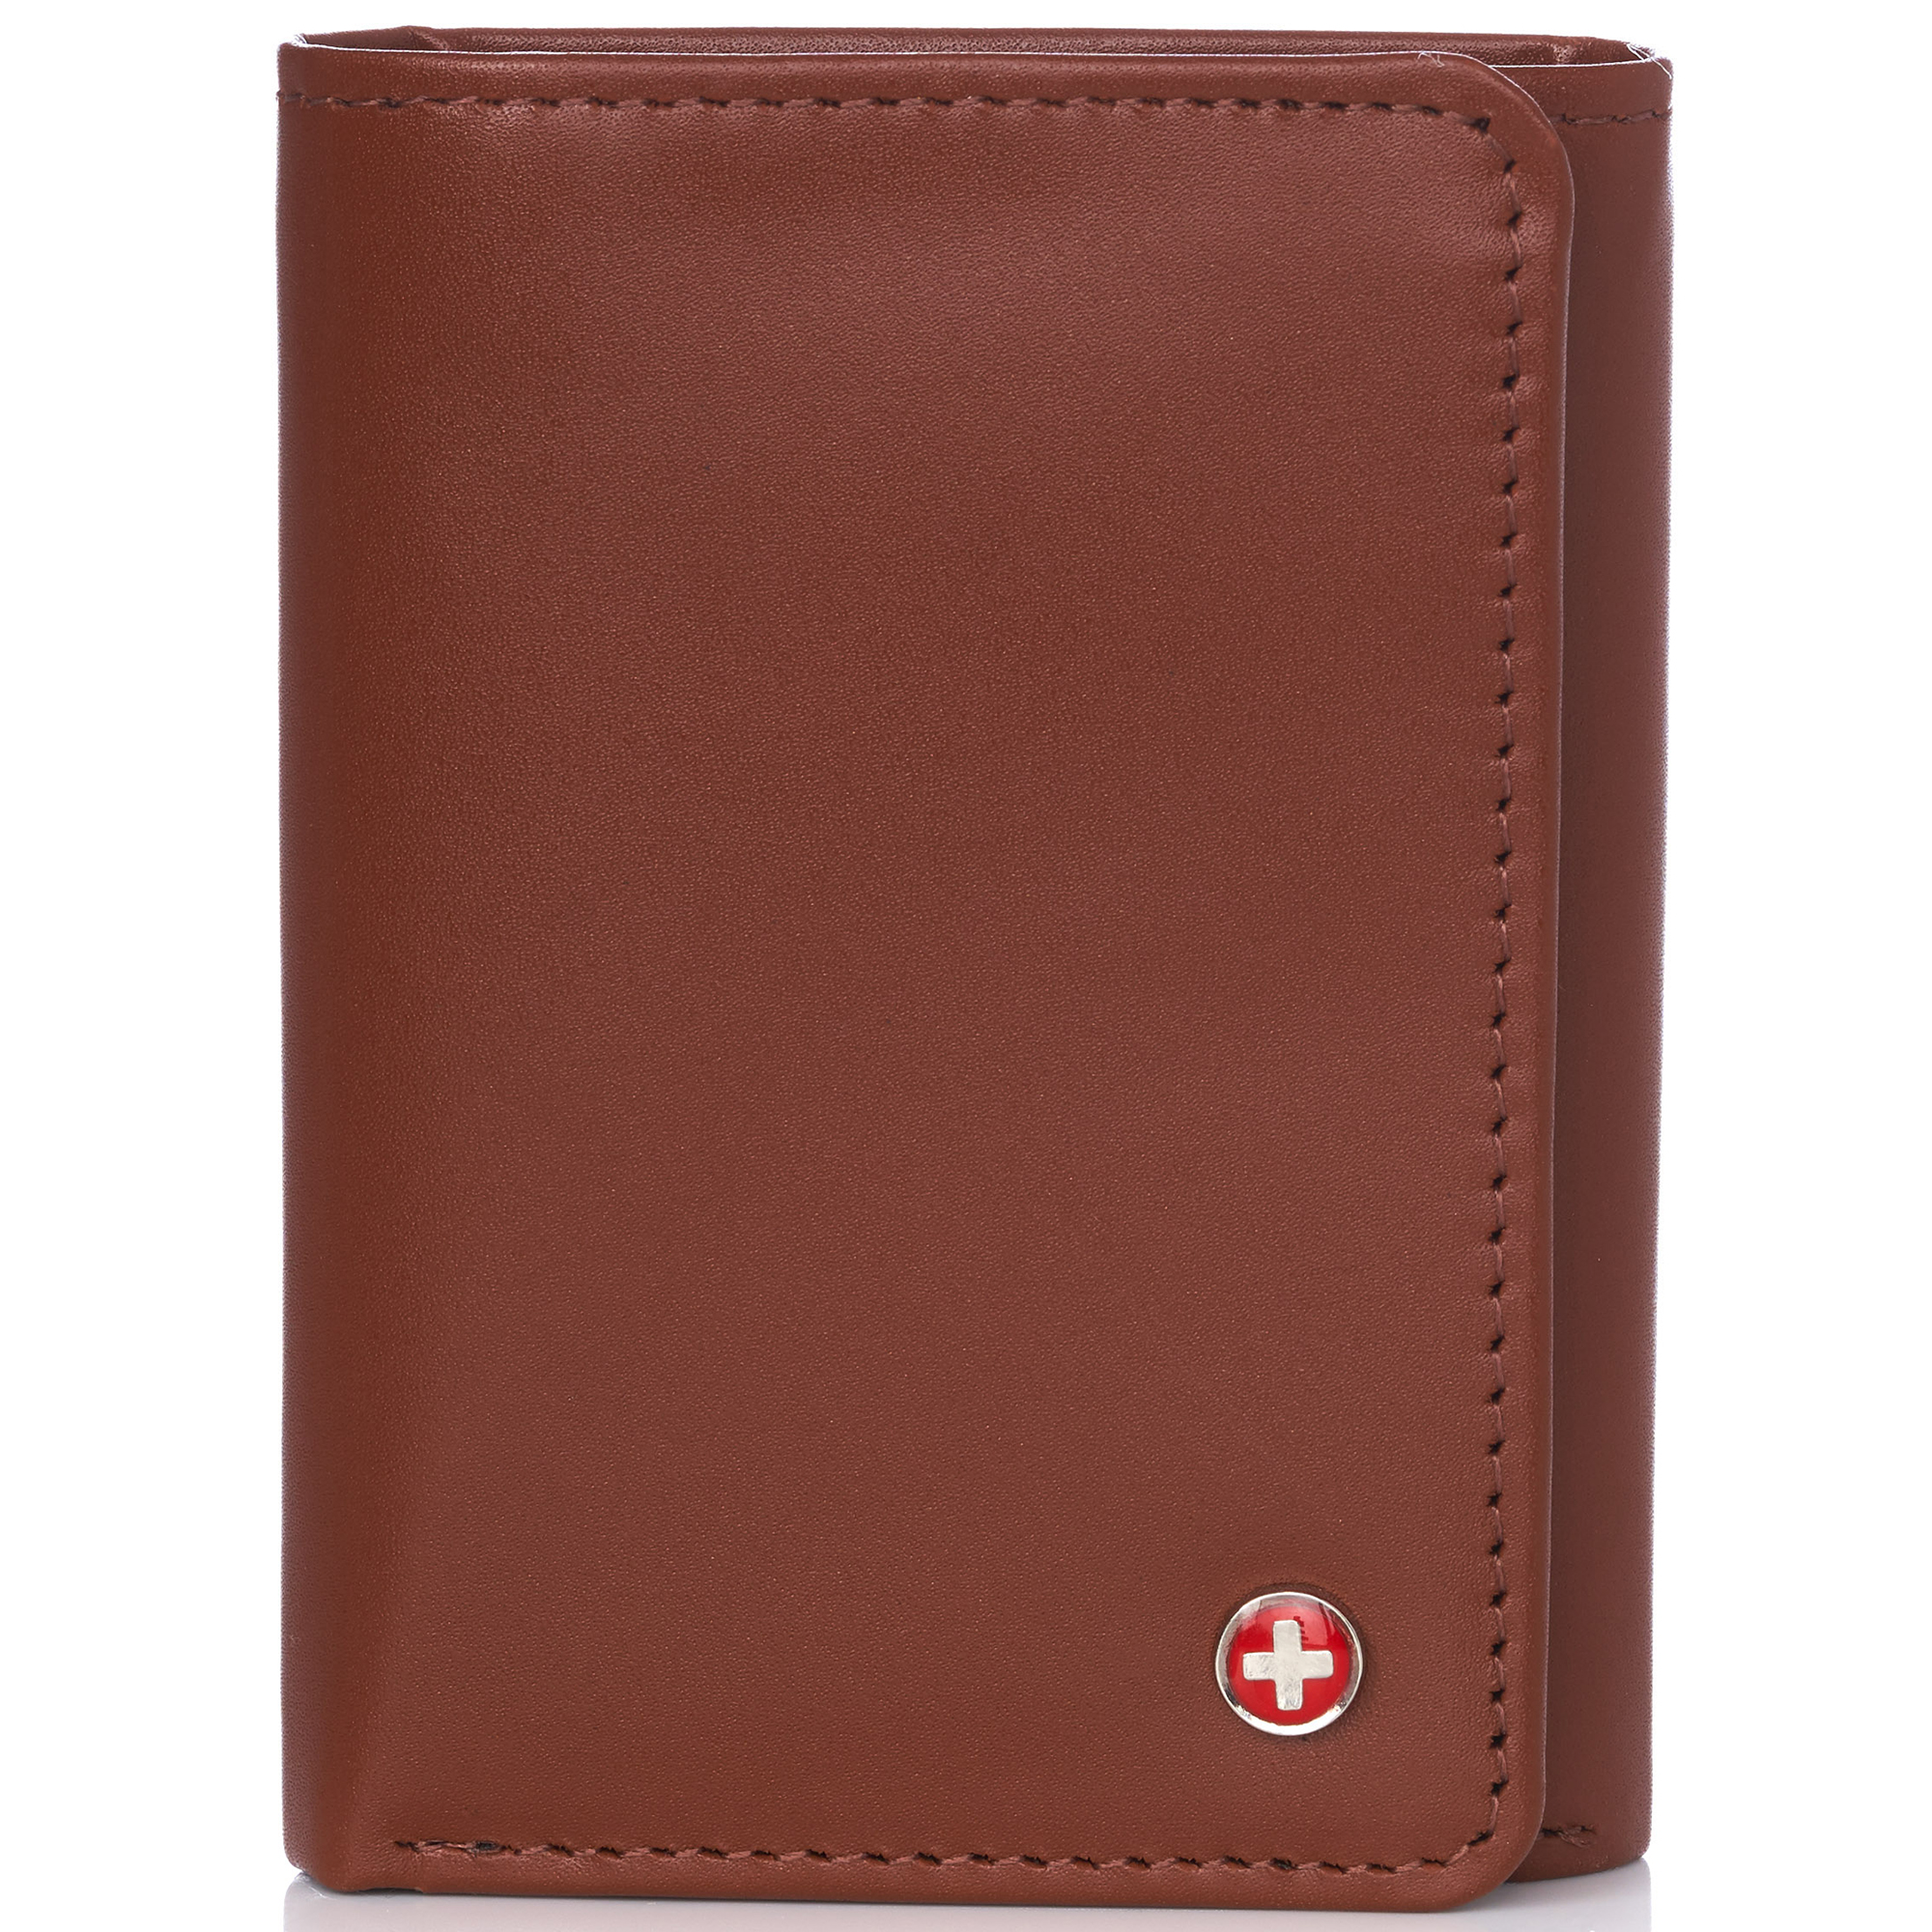 Alpine-Swiss-RFID-Mens-Wallet-Deluxe-Capacity-Trifold-With-Divided-Bill-Section thumbnail 81